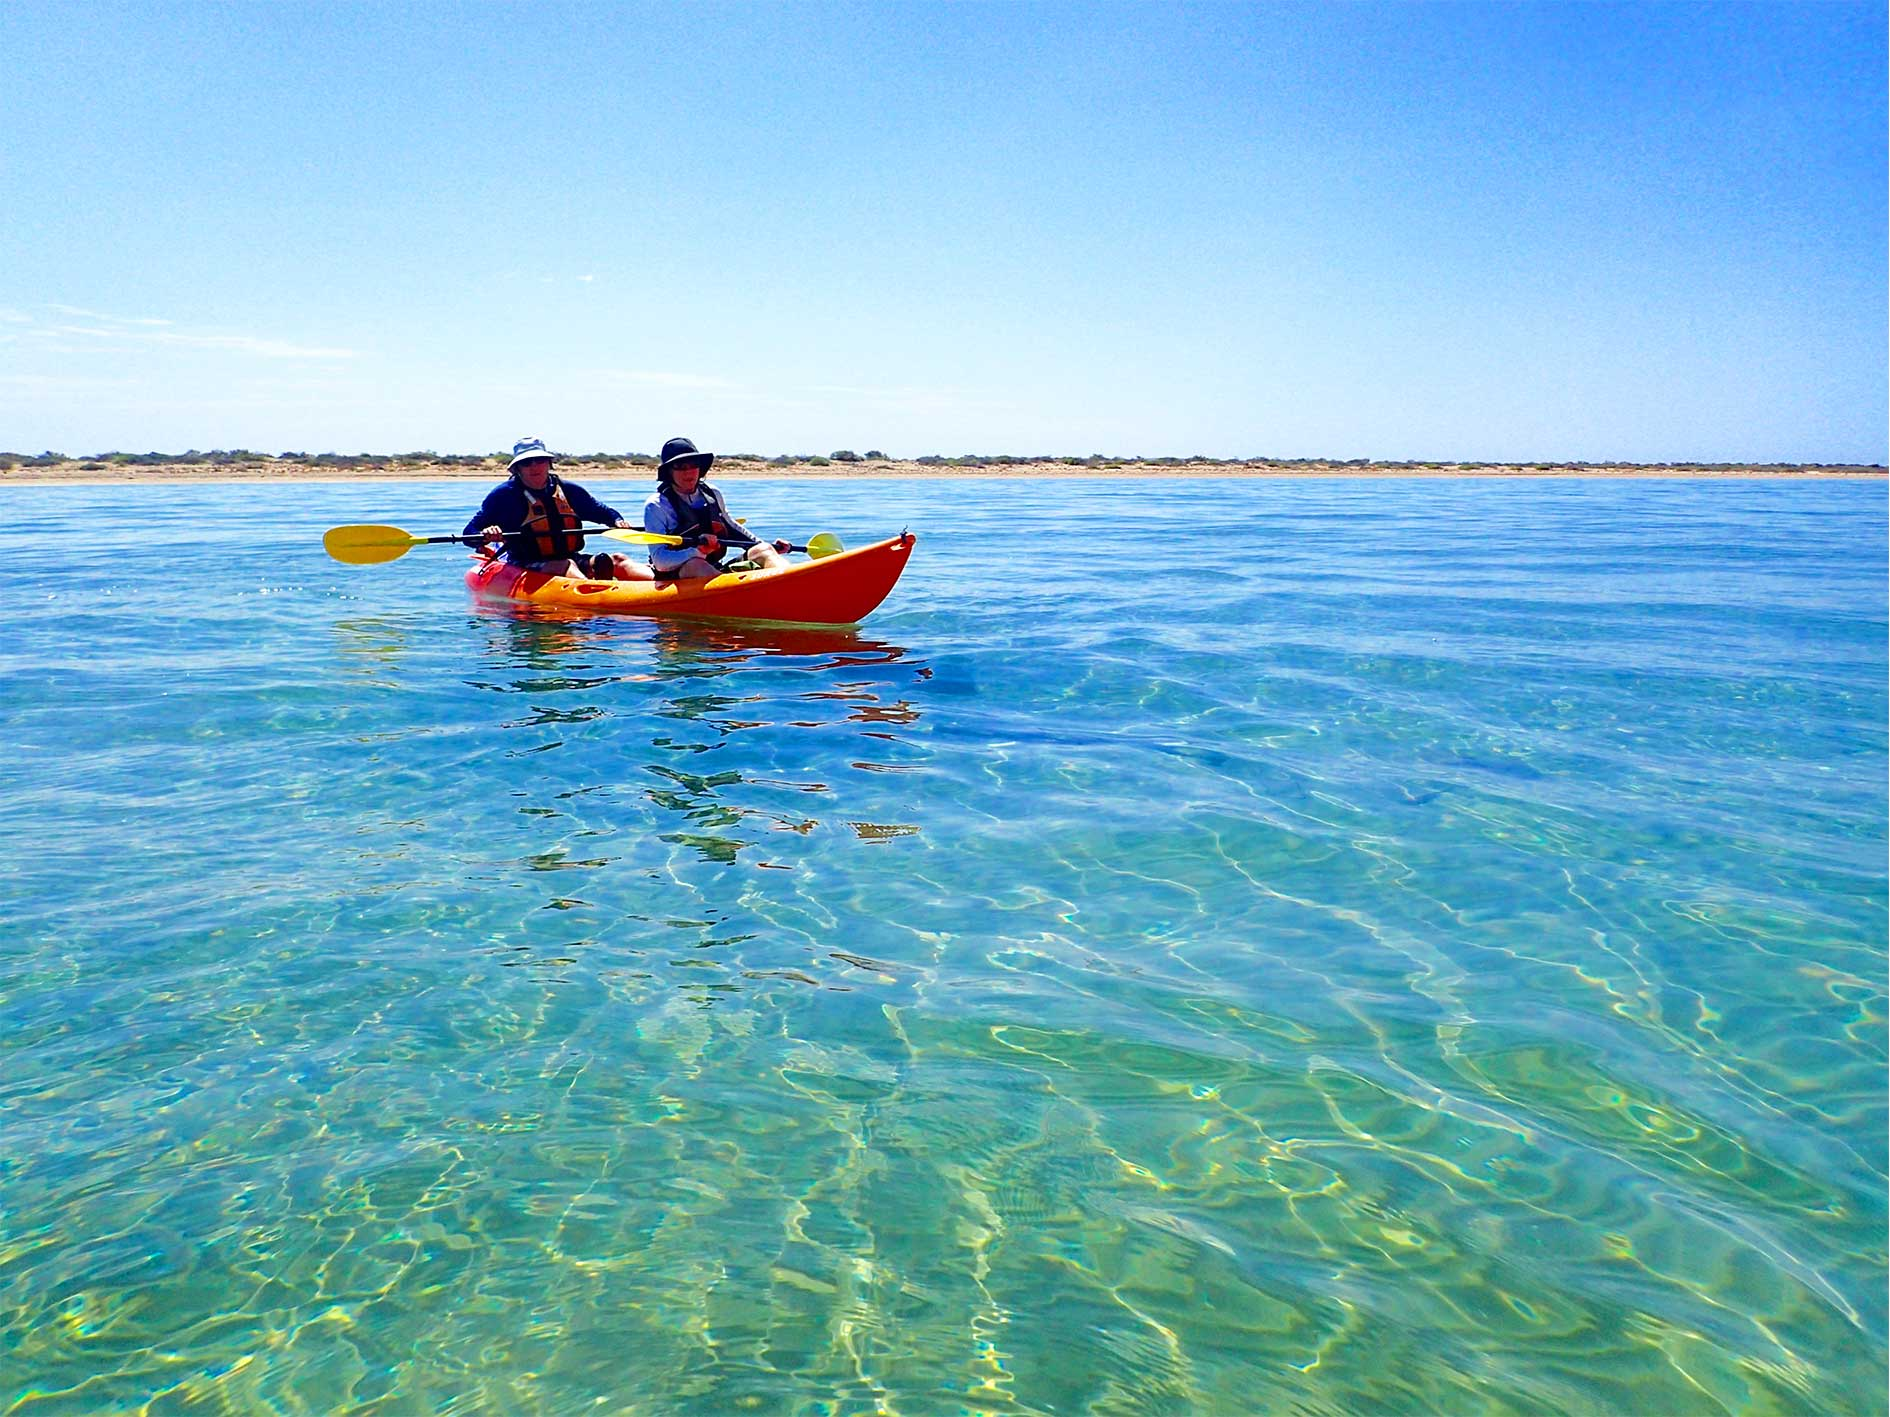 Couple paddle a double sit-on-top sea kayak on Turtle Tour, Ningaloo Reef, Exmouth Western Australia